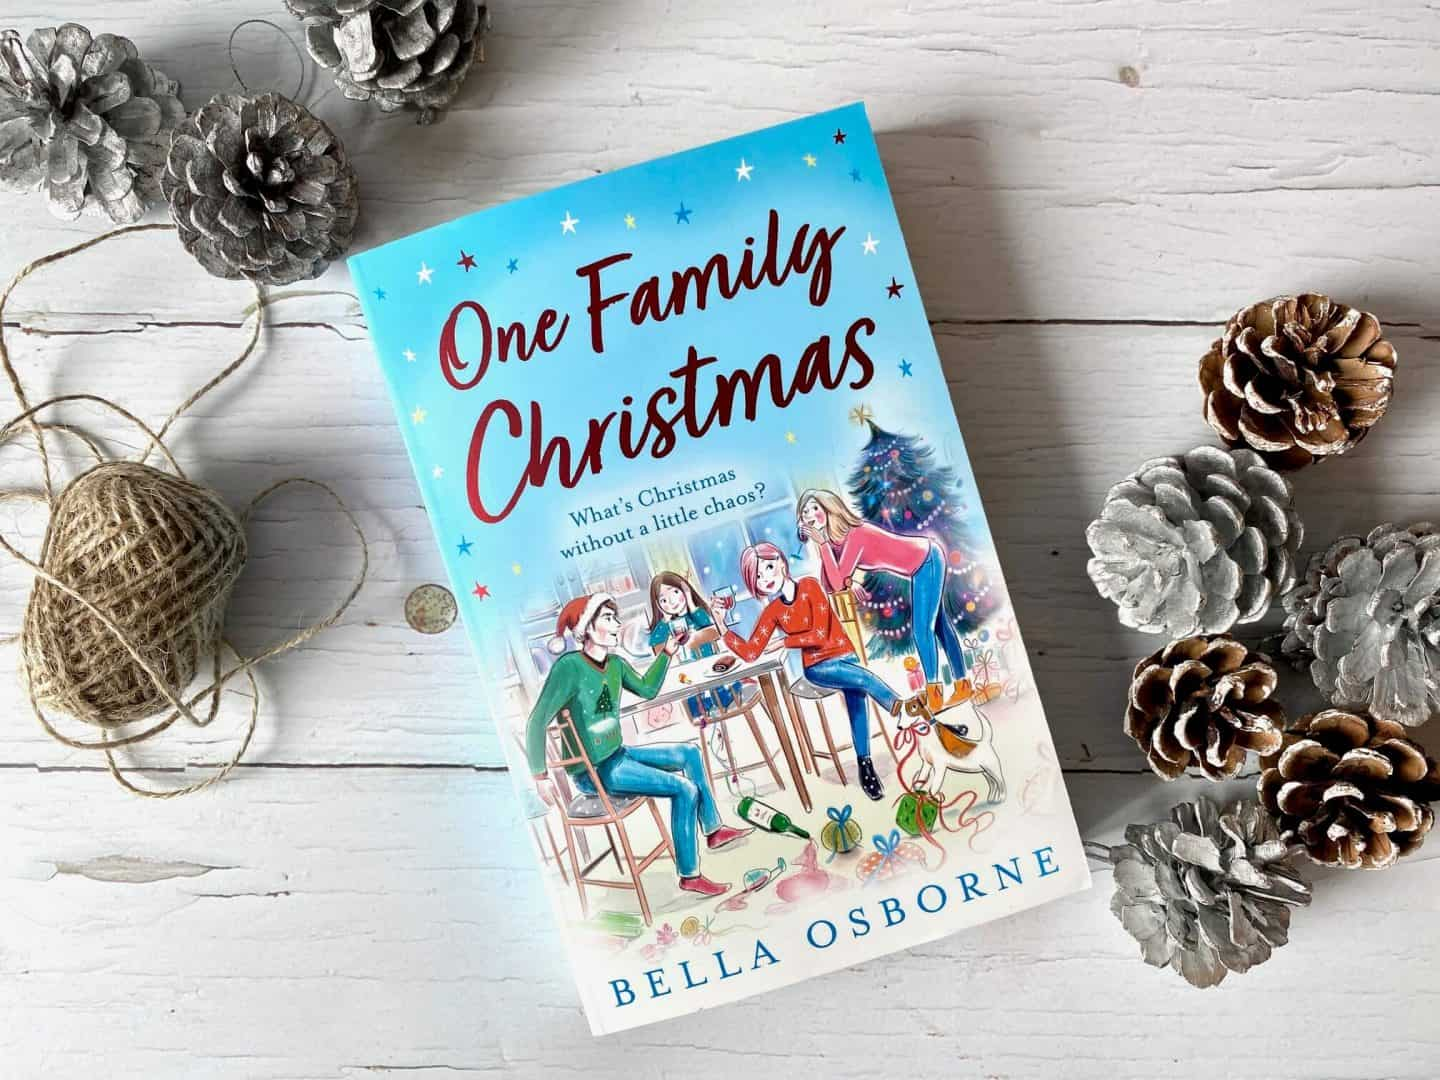 One Family Christmas by Bella Osborne